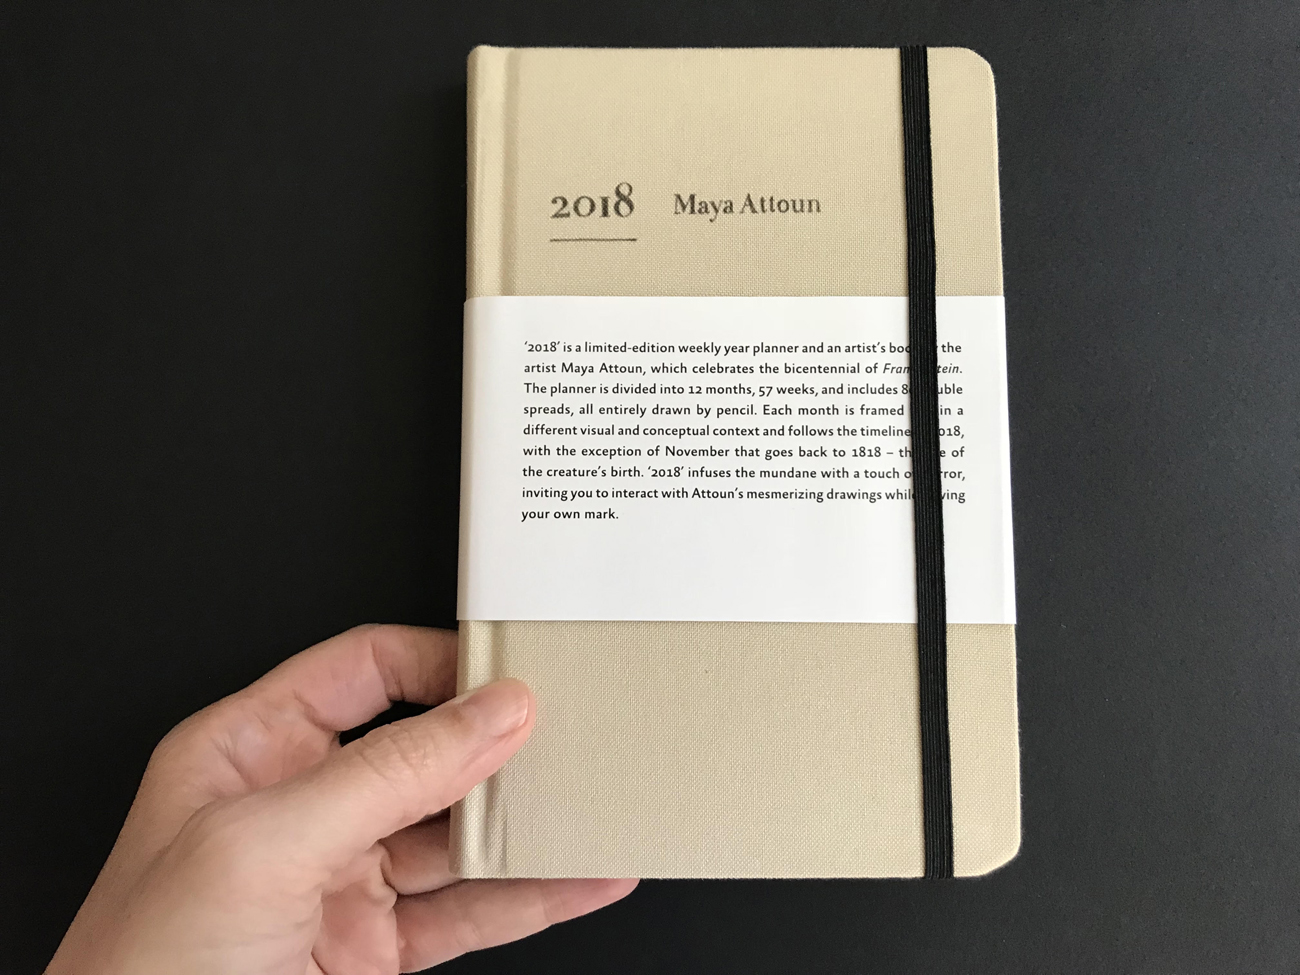 Maya Attoun 2018 weekly year planner and artist book